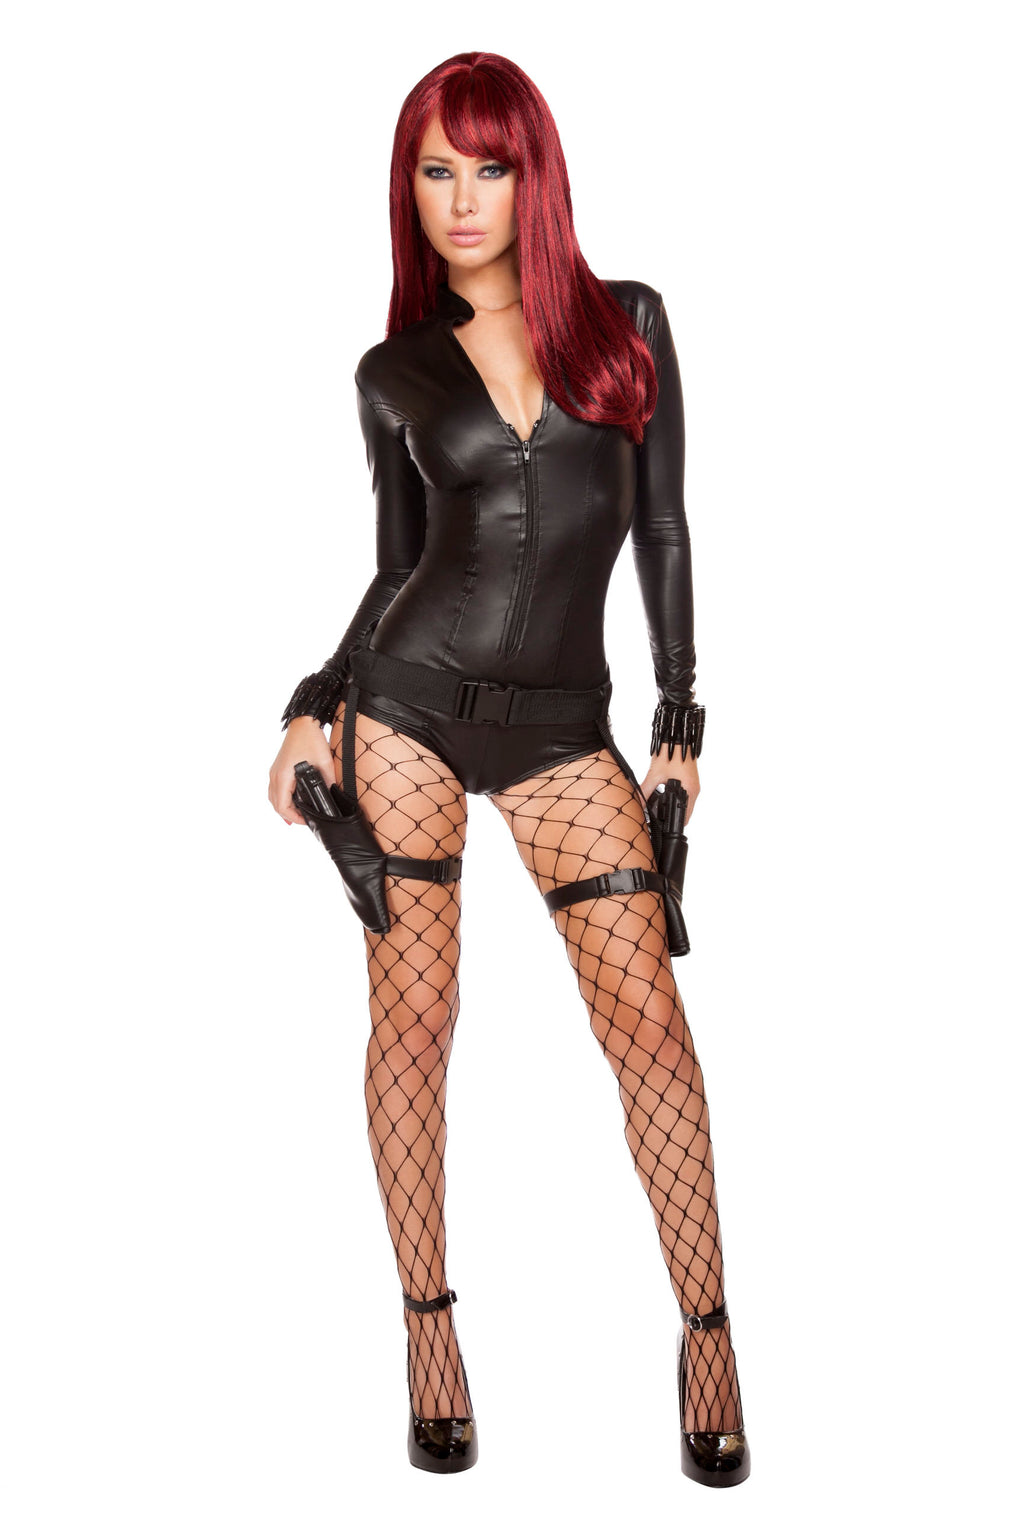 2-Piece-Sexy-Assassin-Ninja-Hit-Woman-Zipper-Romper-Costume